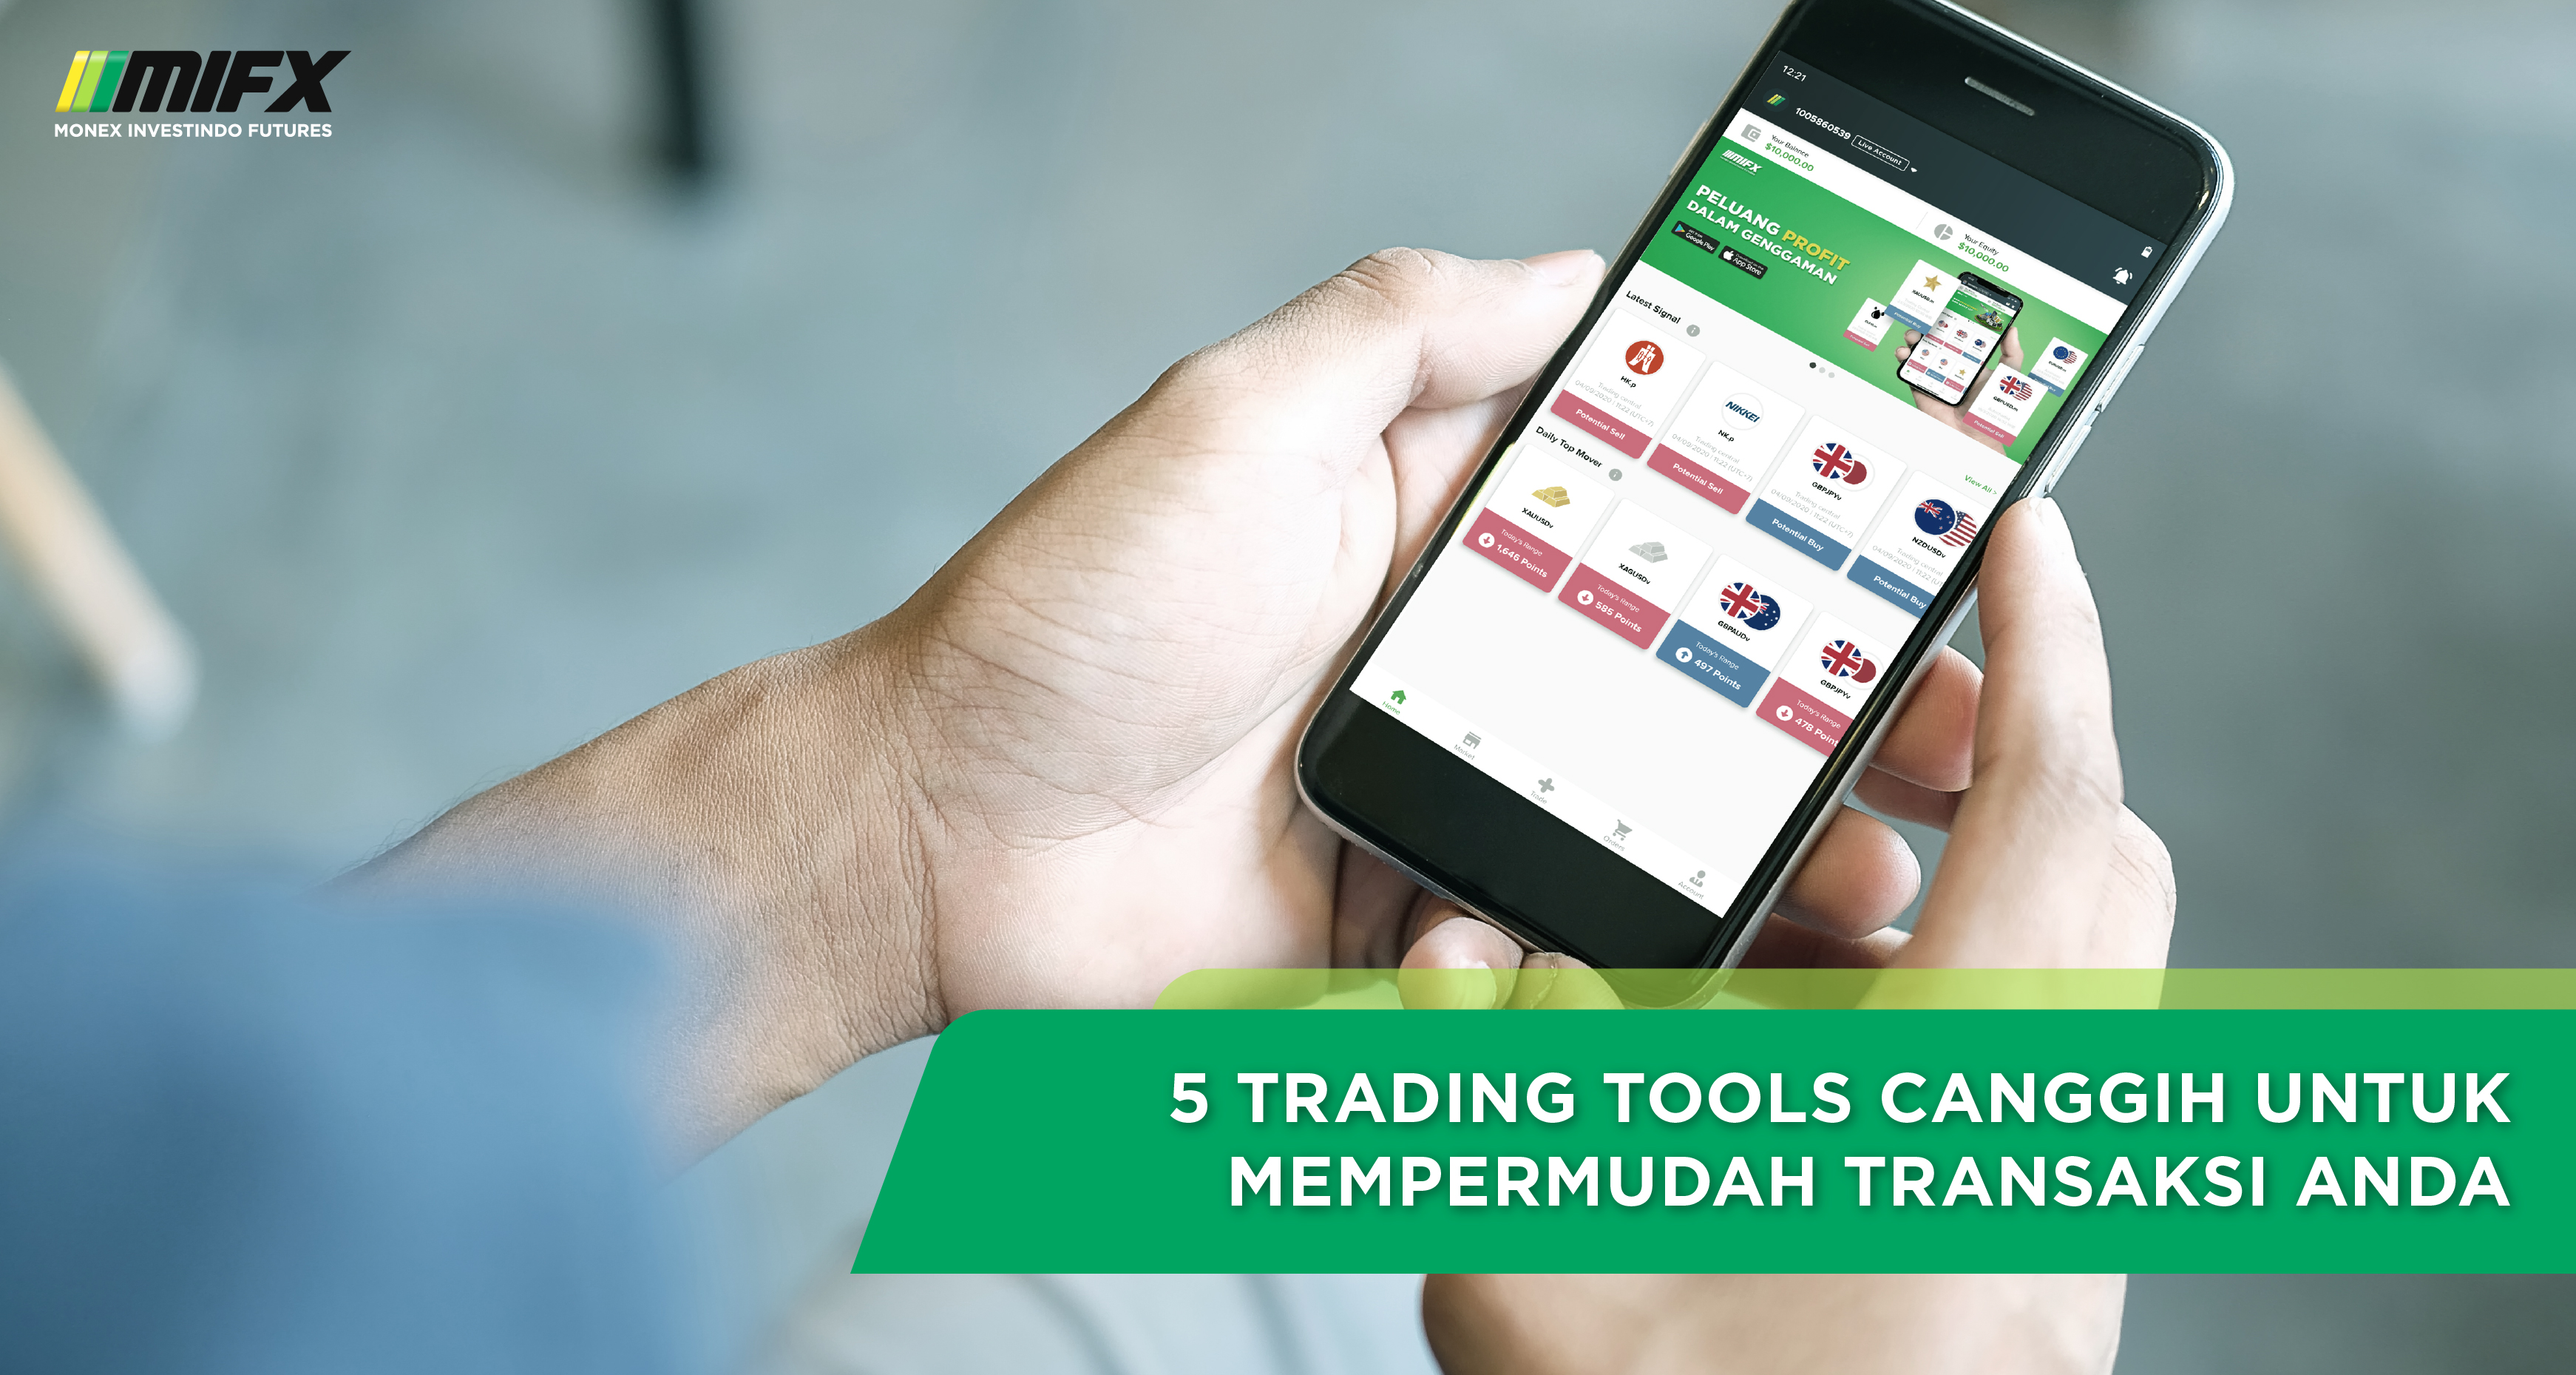 -article-08-trading-tools1606805905.jpg